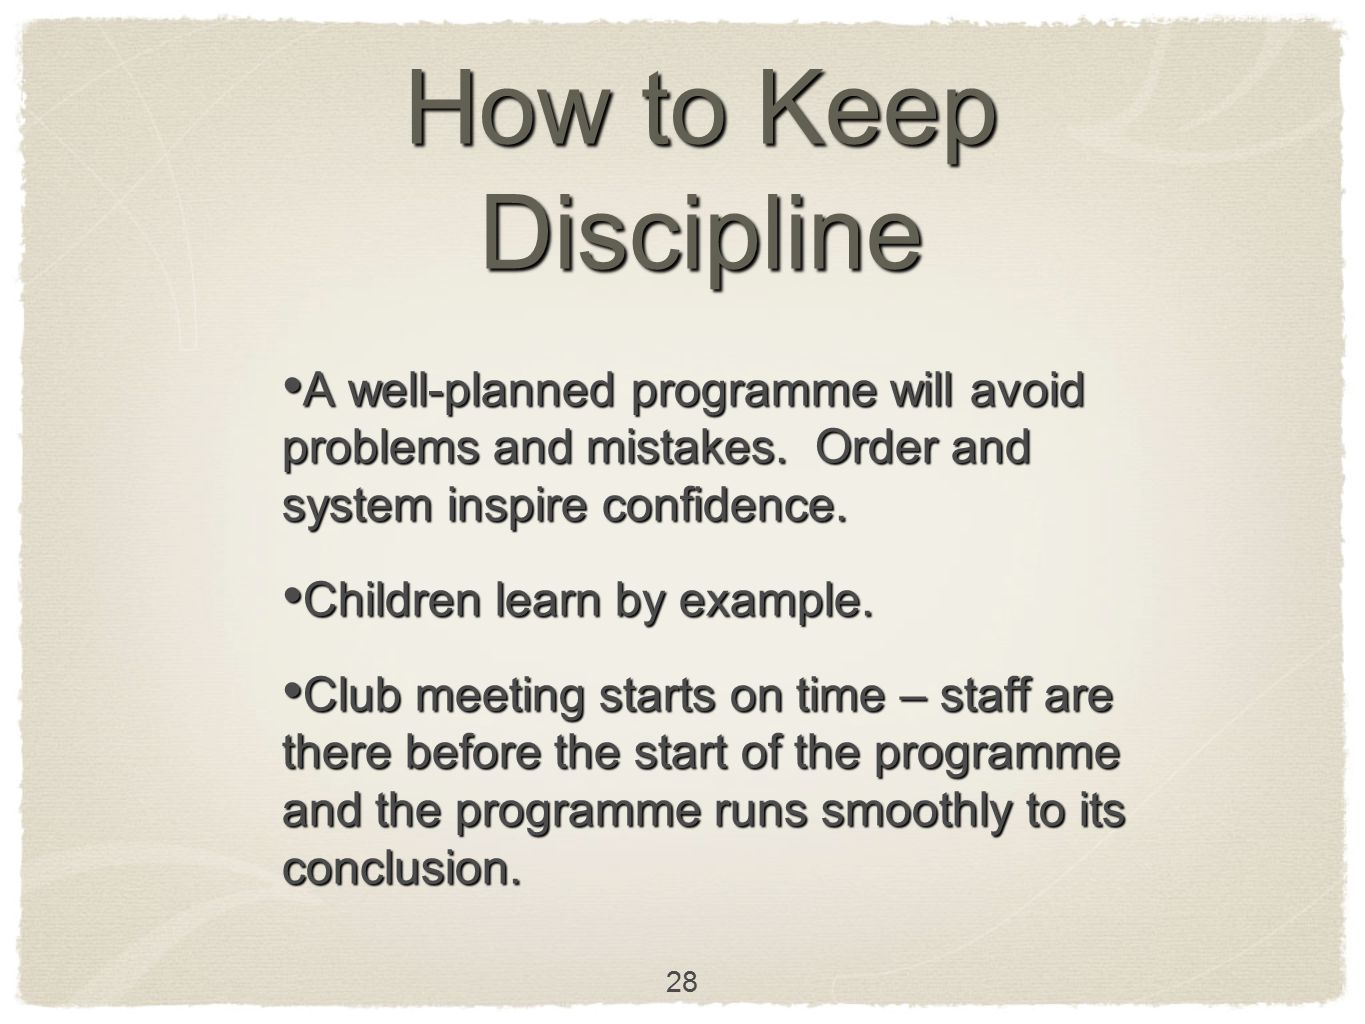 28 How to Keep Discipline A well-planned programme will avoid problems and mistakes. Order and system inspire confidence. A well-planned programme wil